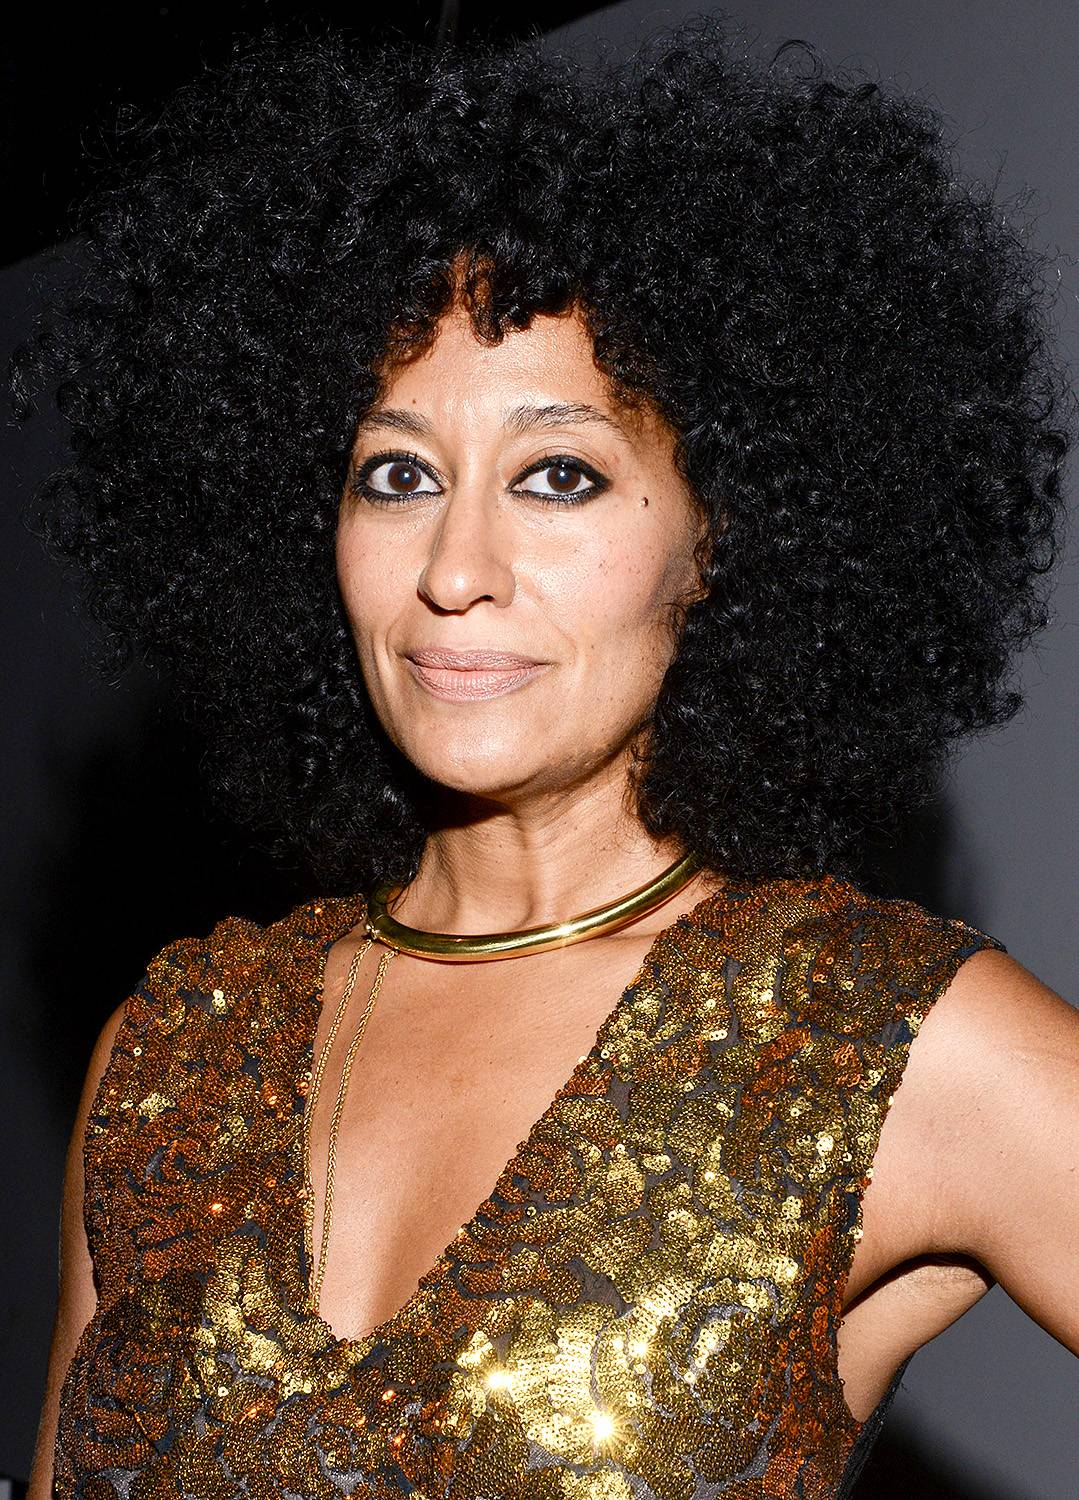 Tracee Ellis Ross - Oh, sorry. We just needed a moment to compose ourselves after taking in the glory that is Tracee's hair! This season, it?s all about shape, so ask your stylist for a cut that accentuates your texture, then use Tracee?s curly girl styling tips to make your spirals pop.  (Photo: Vivien Killilea/Getty Images)